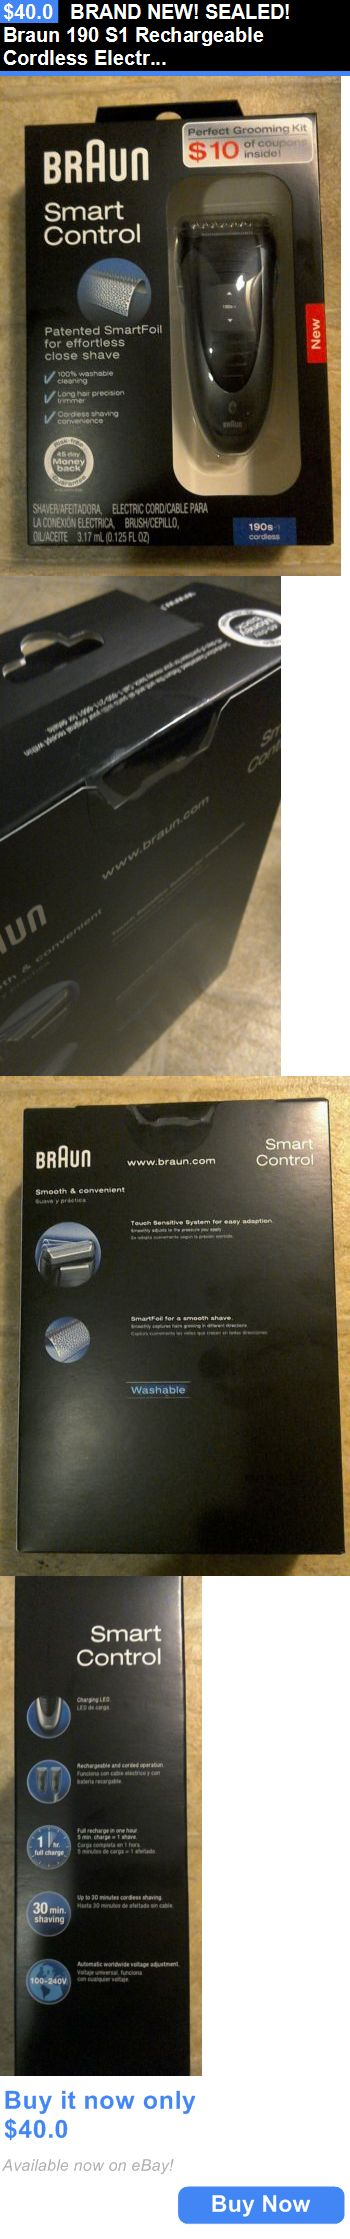 Shaving: Brand New! Sealed! Braun 190 S1 Rechargeable Cordless Electric Shaver And Trimmer! BUY IT NOW ONLY: $40.0